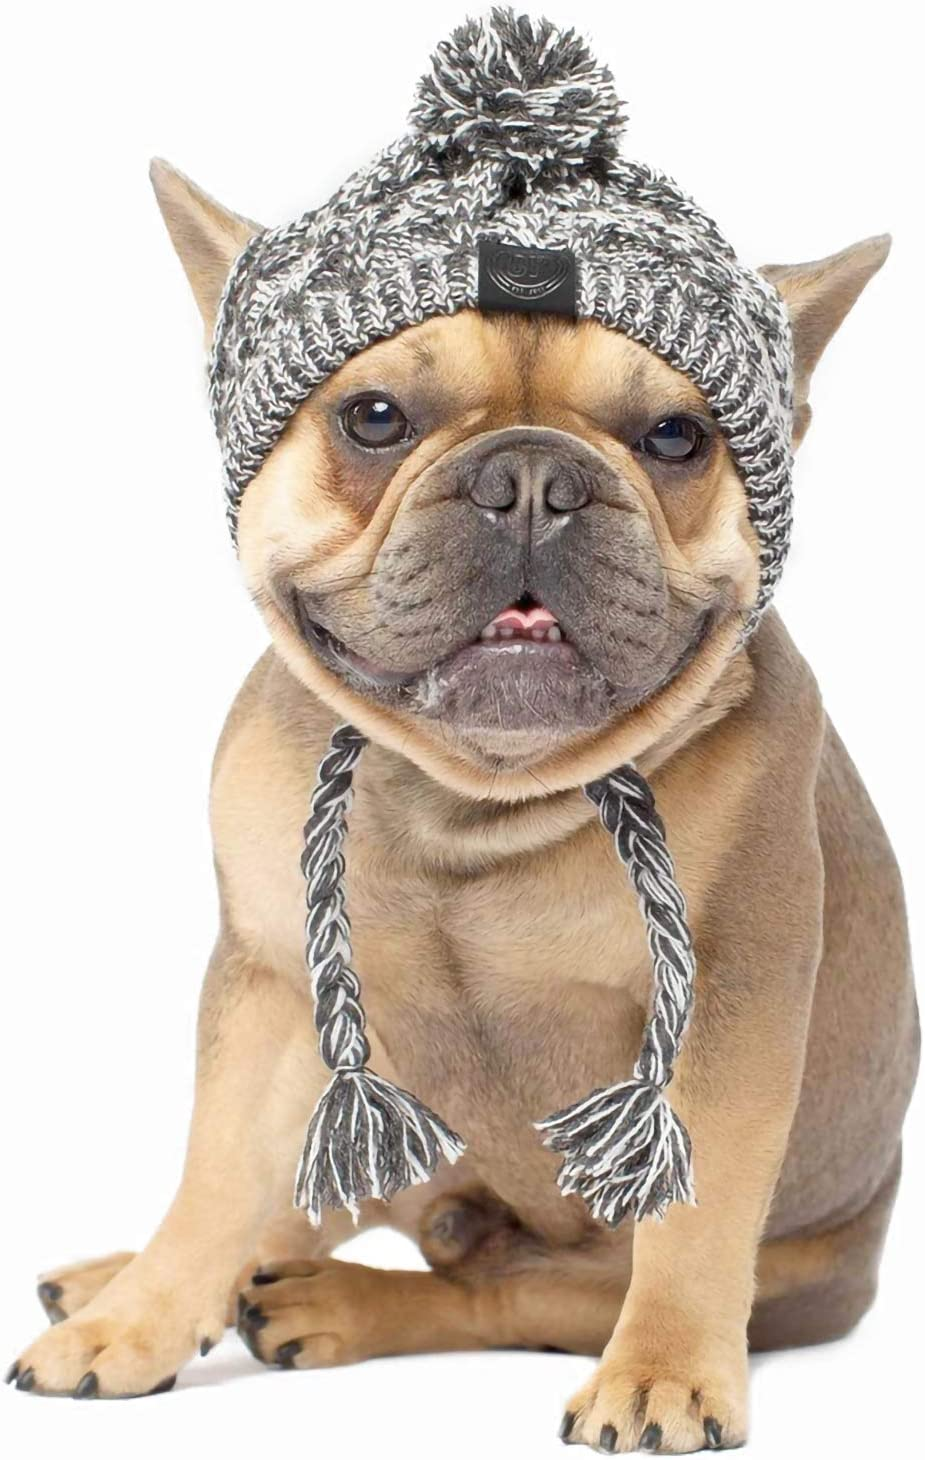 Warm Pet Dog Knitted Hat, Dog Hats for Small Dogs, Warm Winter Dog Hat Knit Snood Headwear for Pets, Pet Christmas Winter Warm Caps (M) : Kitchen & Dining